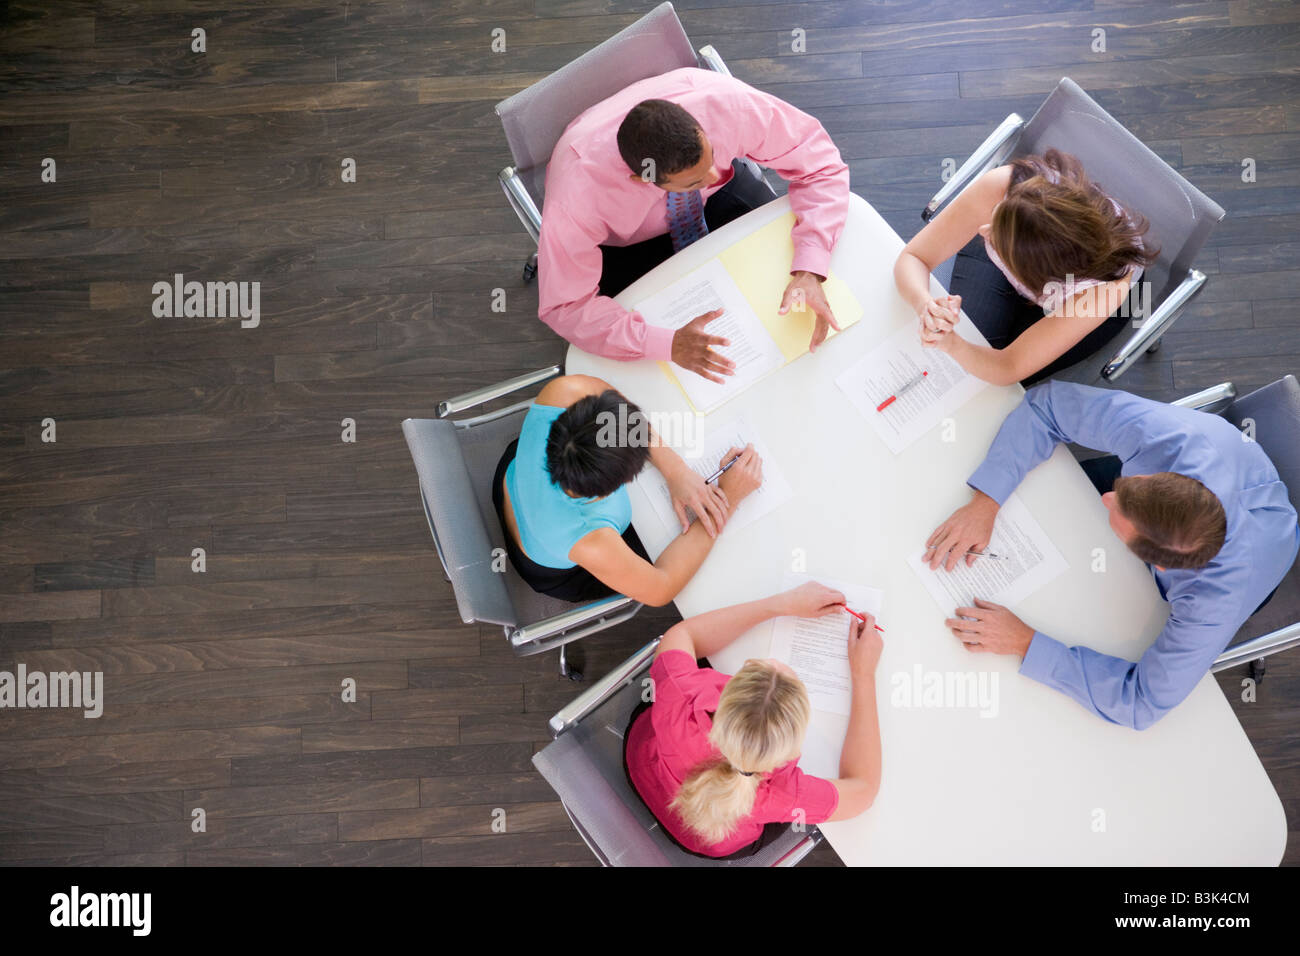 Five businesspeople at boardroom table - Stock Image